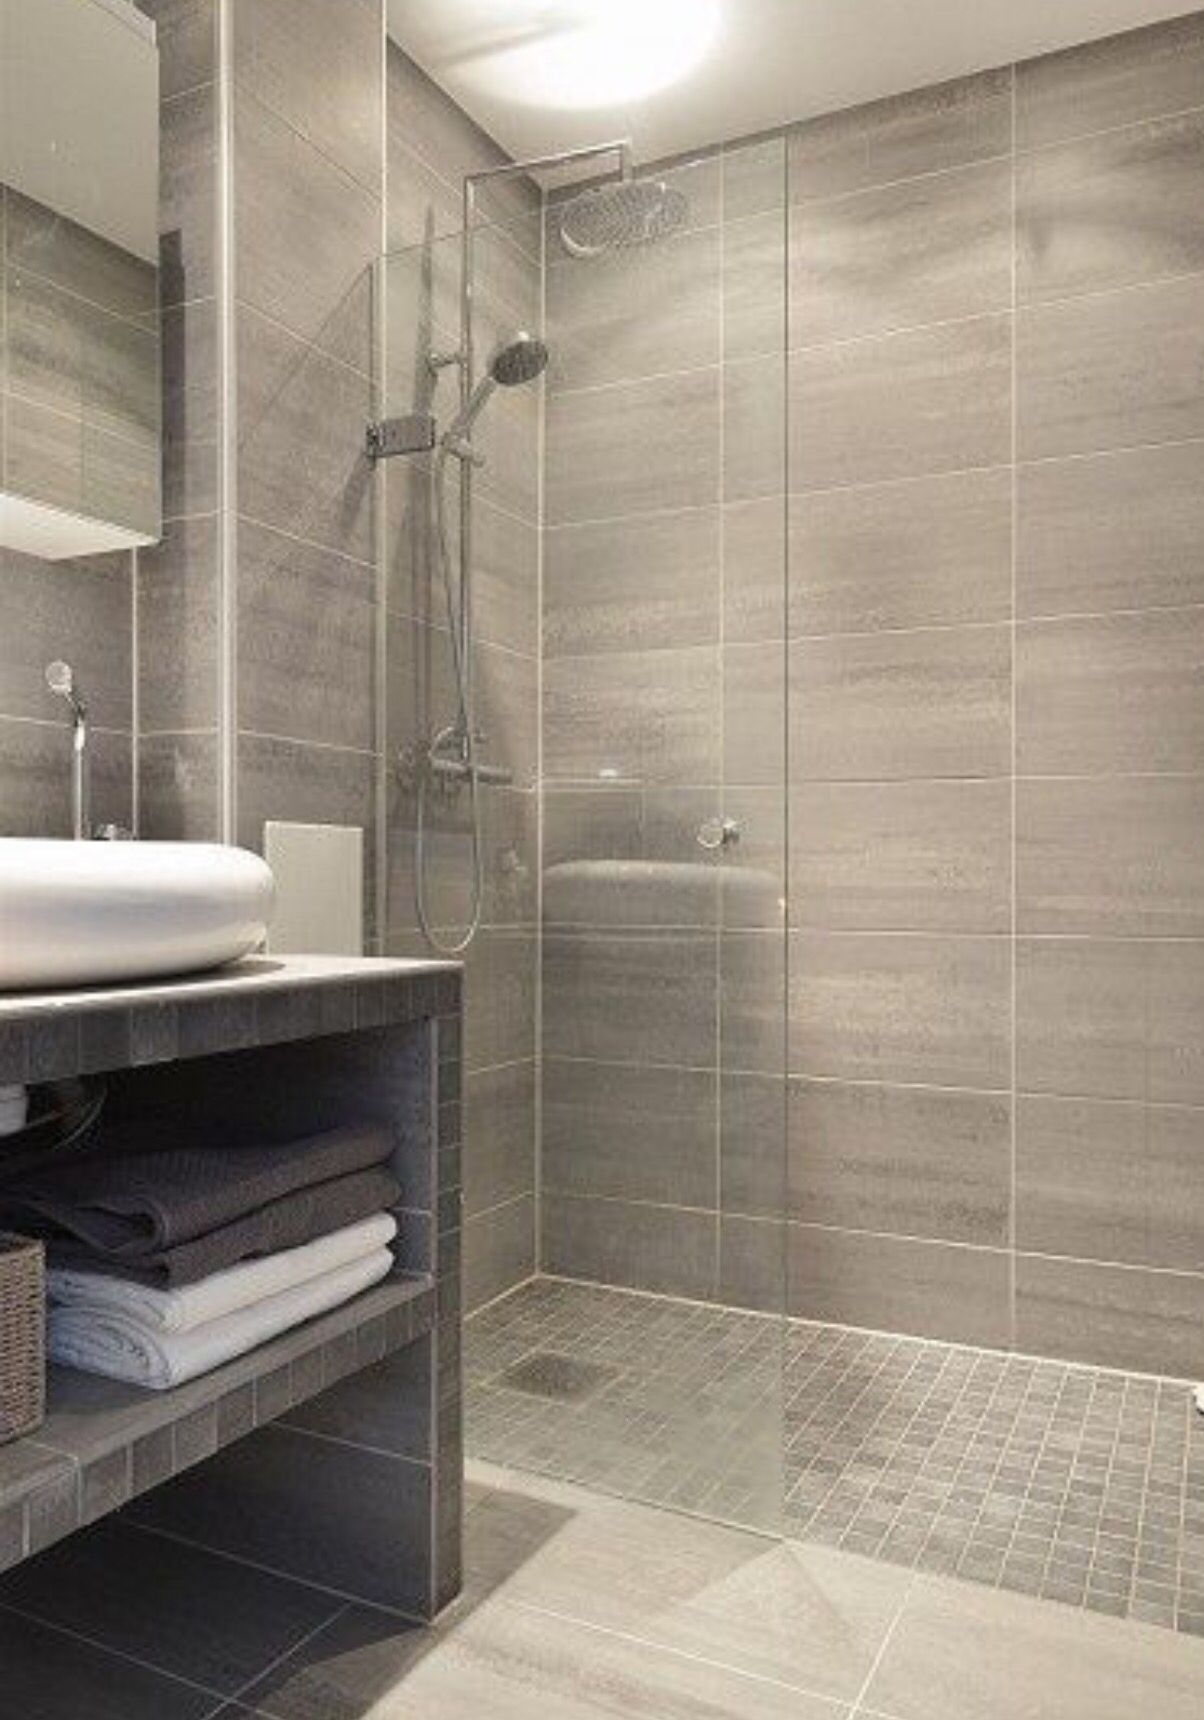 Porcelain tiles are fabulous, easy care, and sustainable